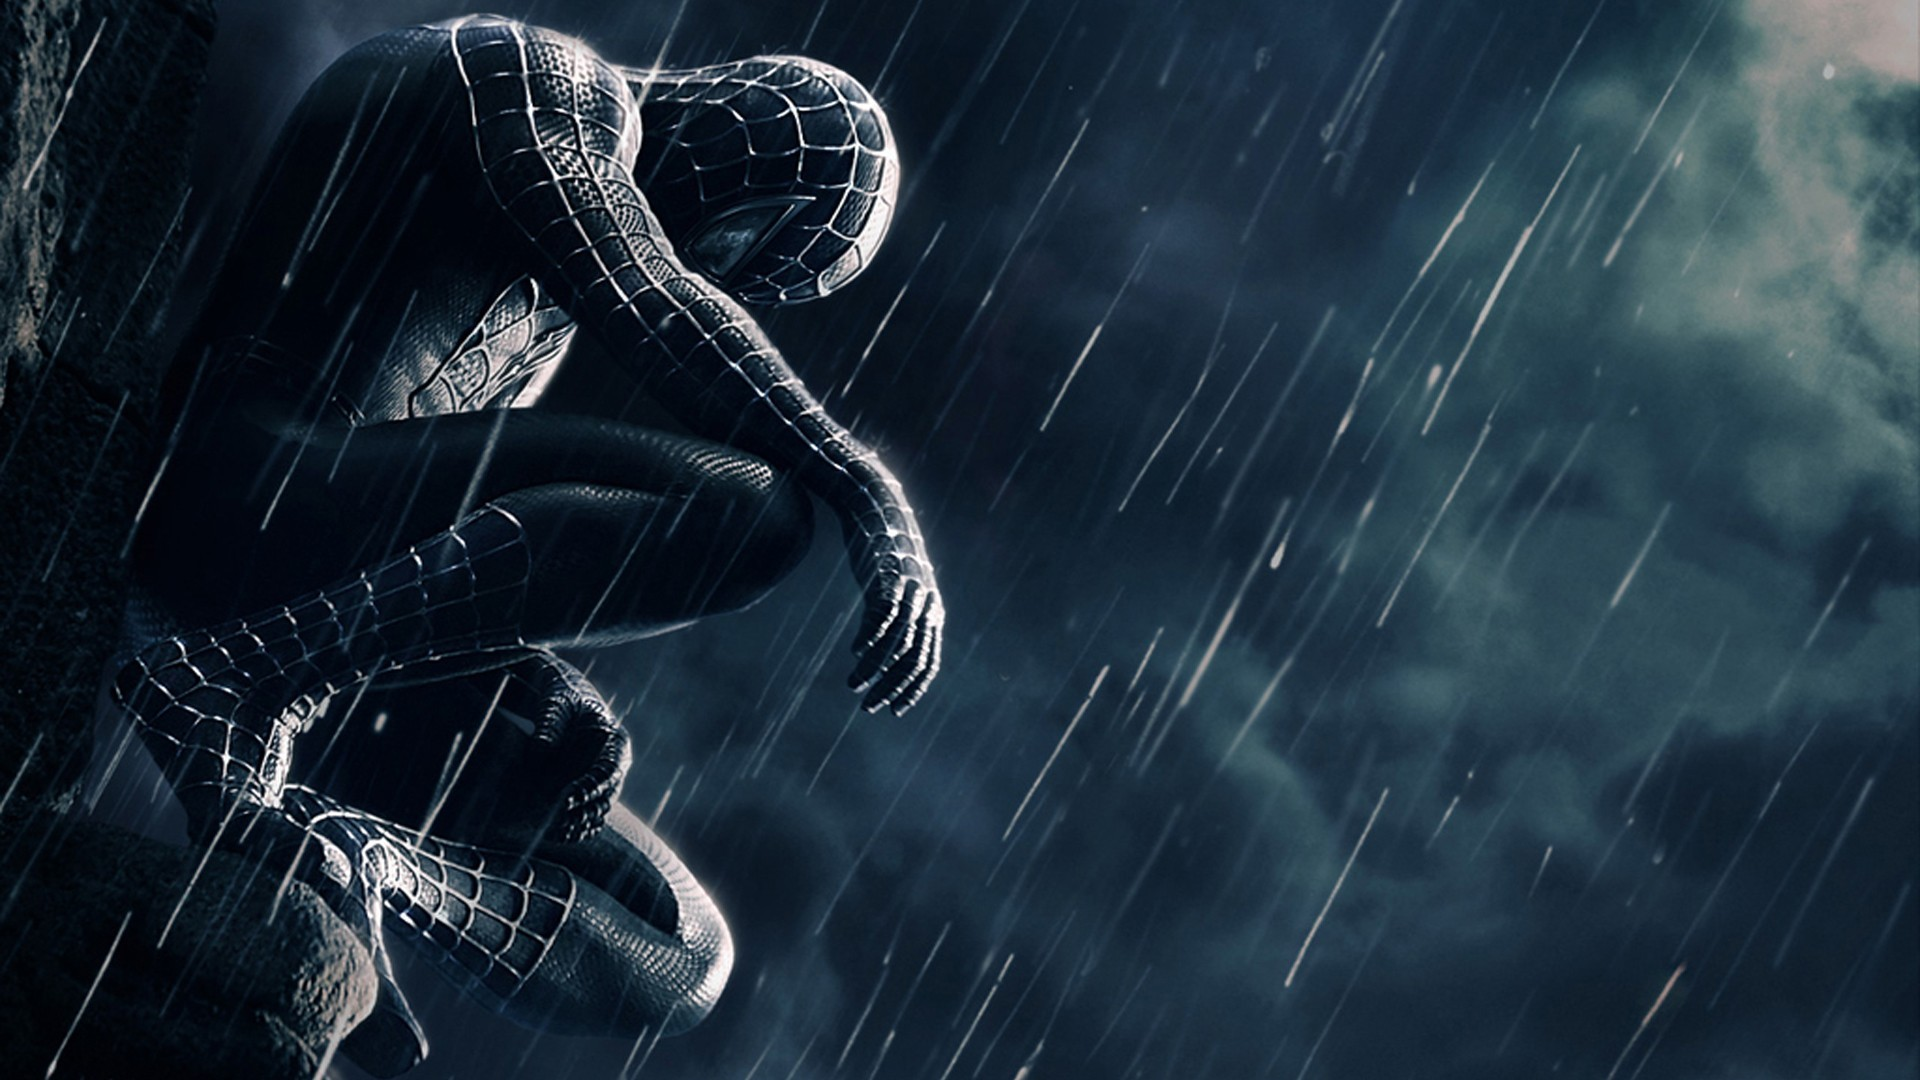 Black spiderman s wallpaper wide cool hd wallpaper - Black and white spiderman wallpaper ...